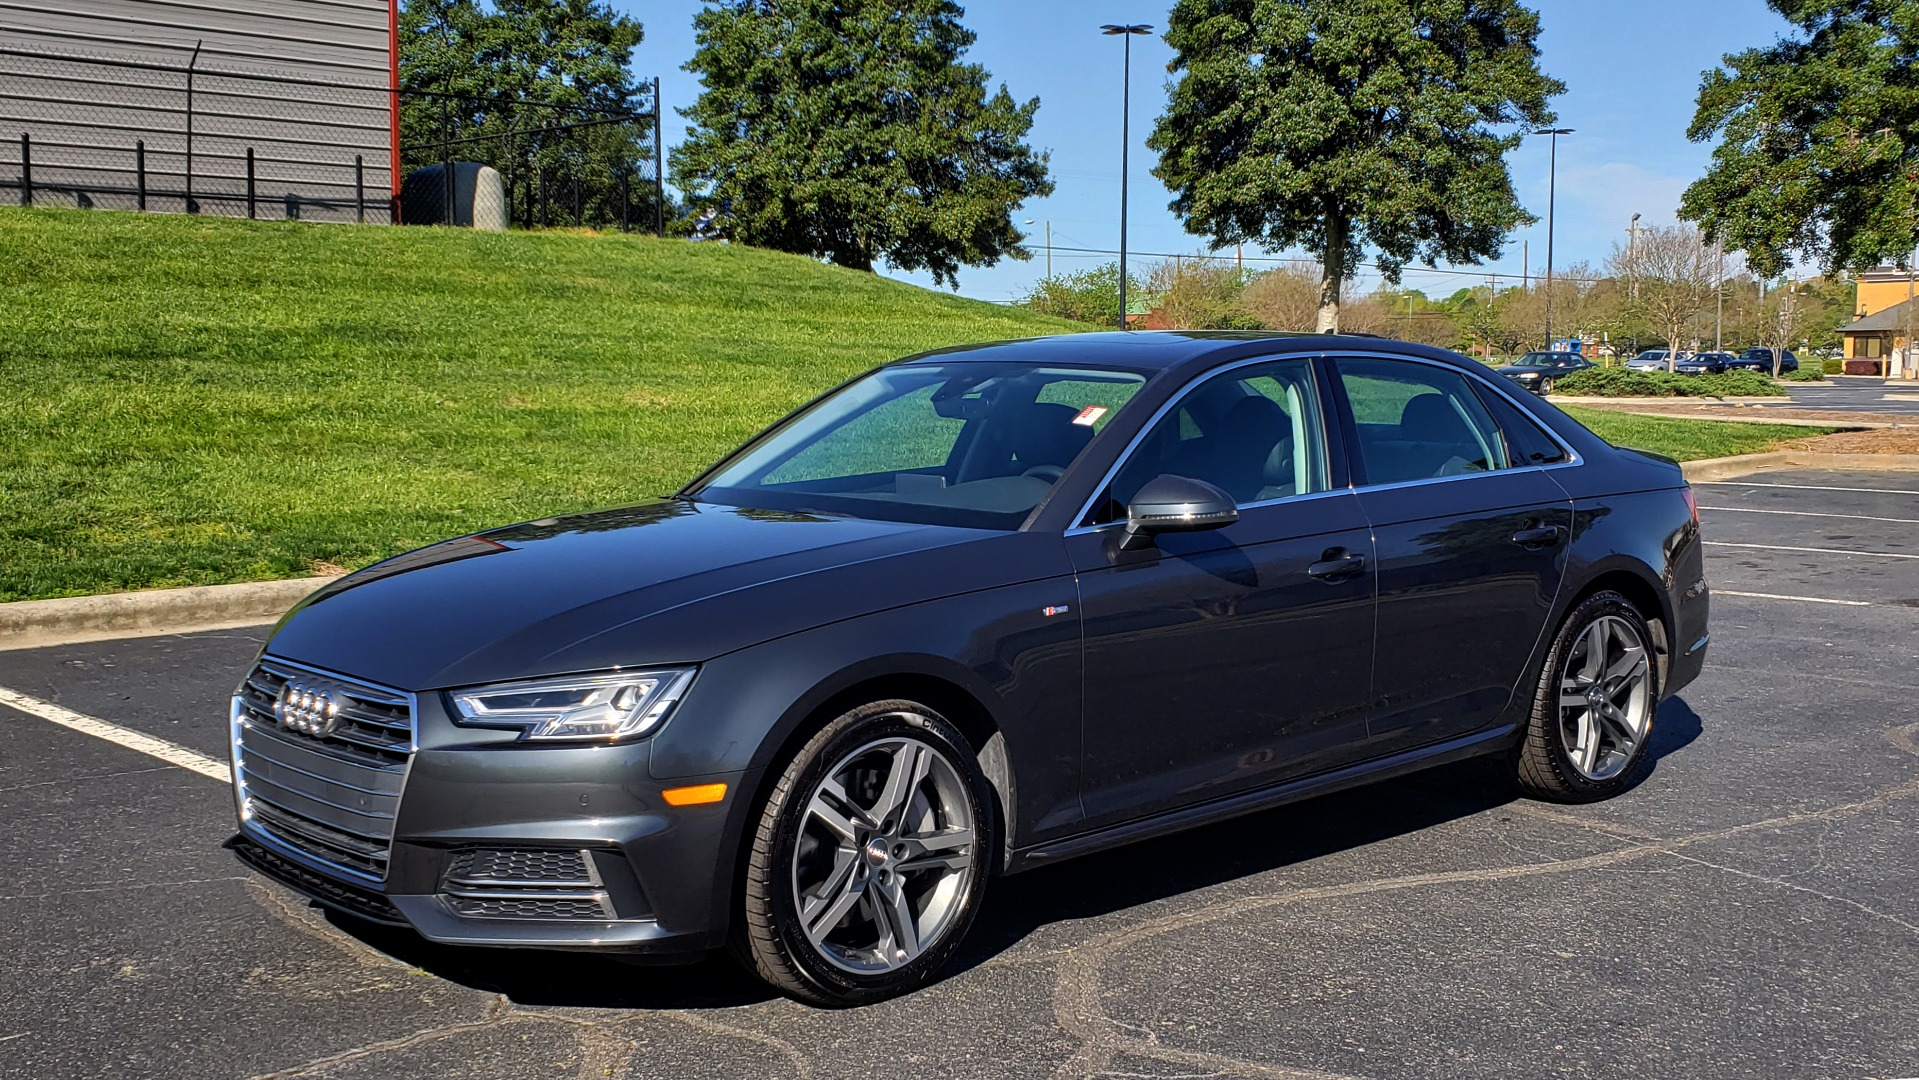 Used 2017 Audi A4 PREMIUM PLUS 2.0T S-TRONIC / NAV / SUNROOF / REARVIEW for sale Sold at Formula Imports in Charlotte NC 28227 1